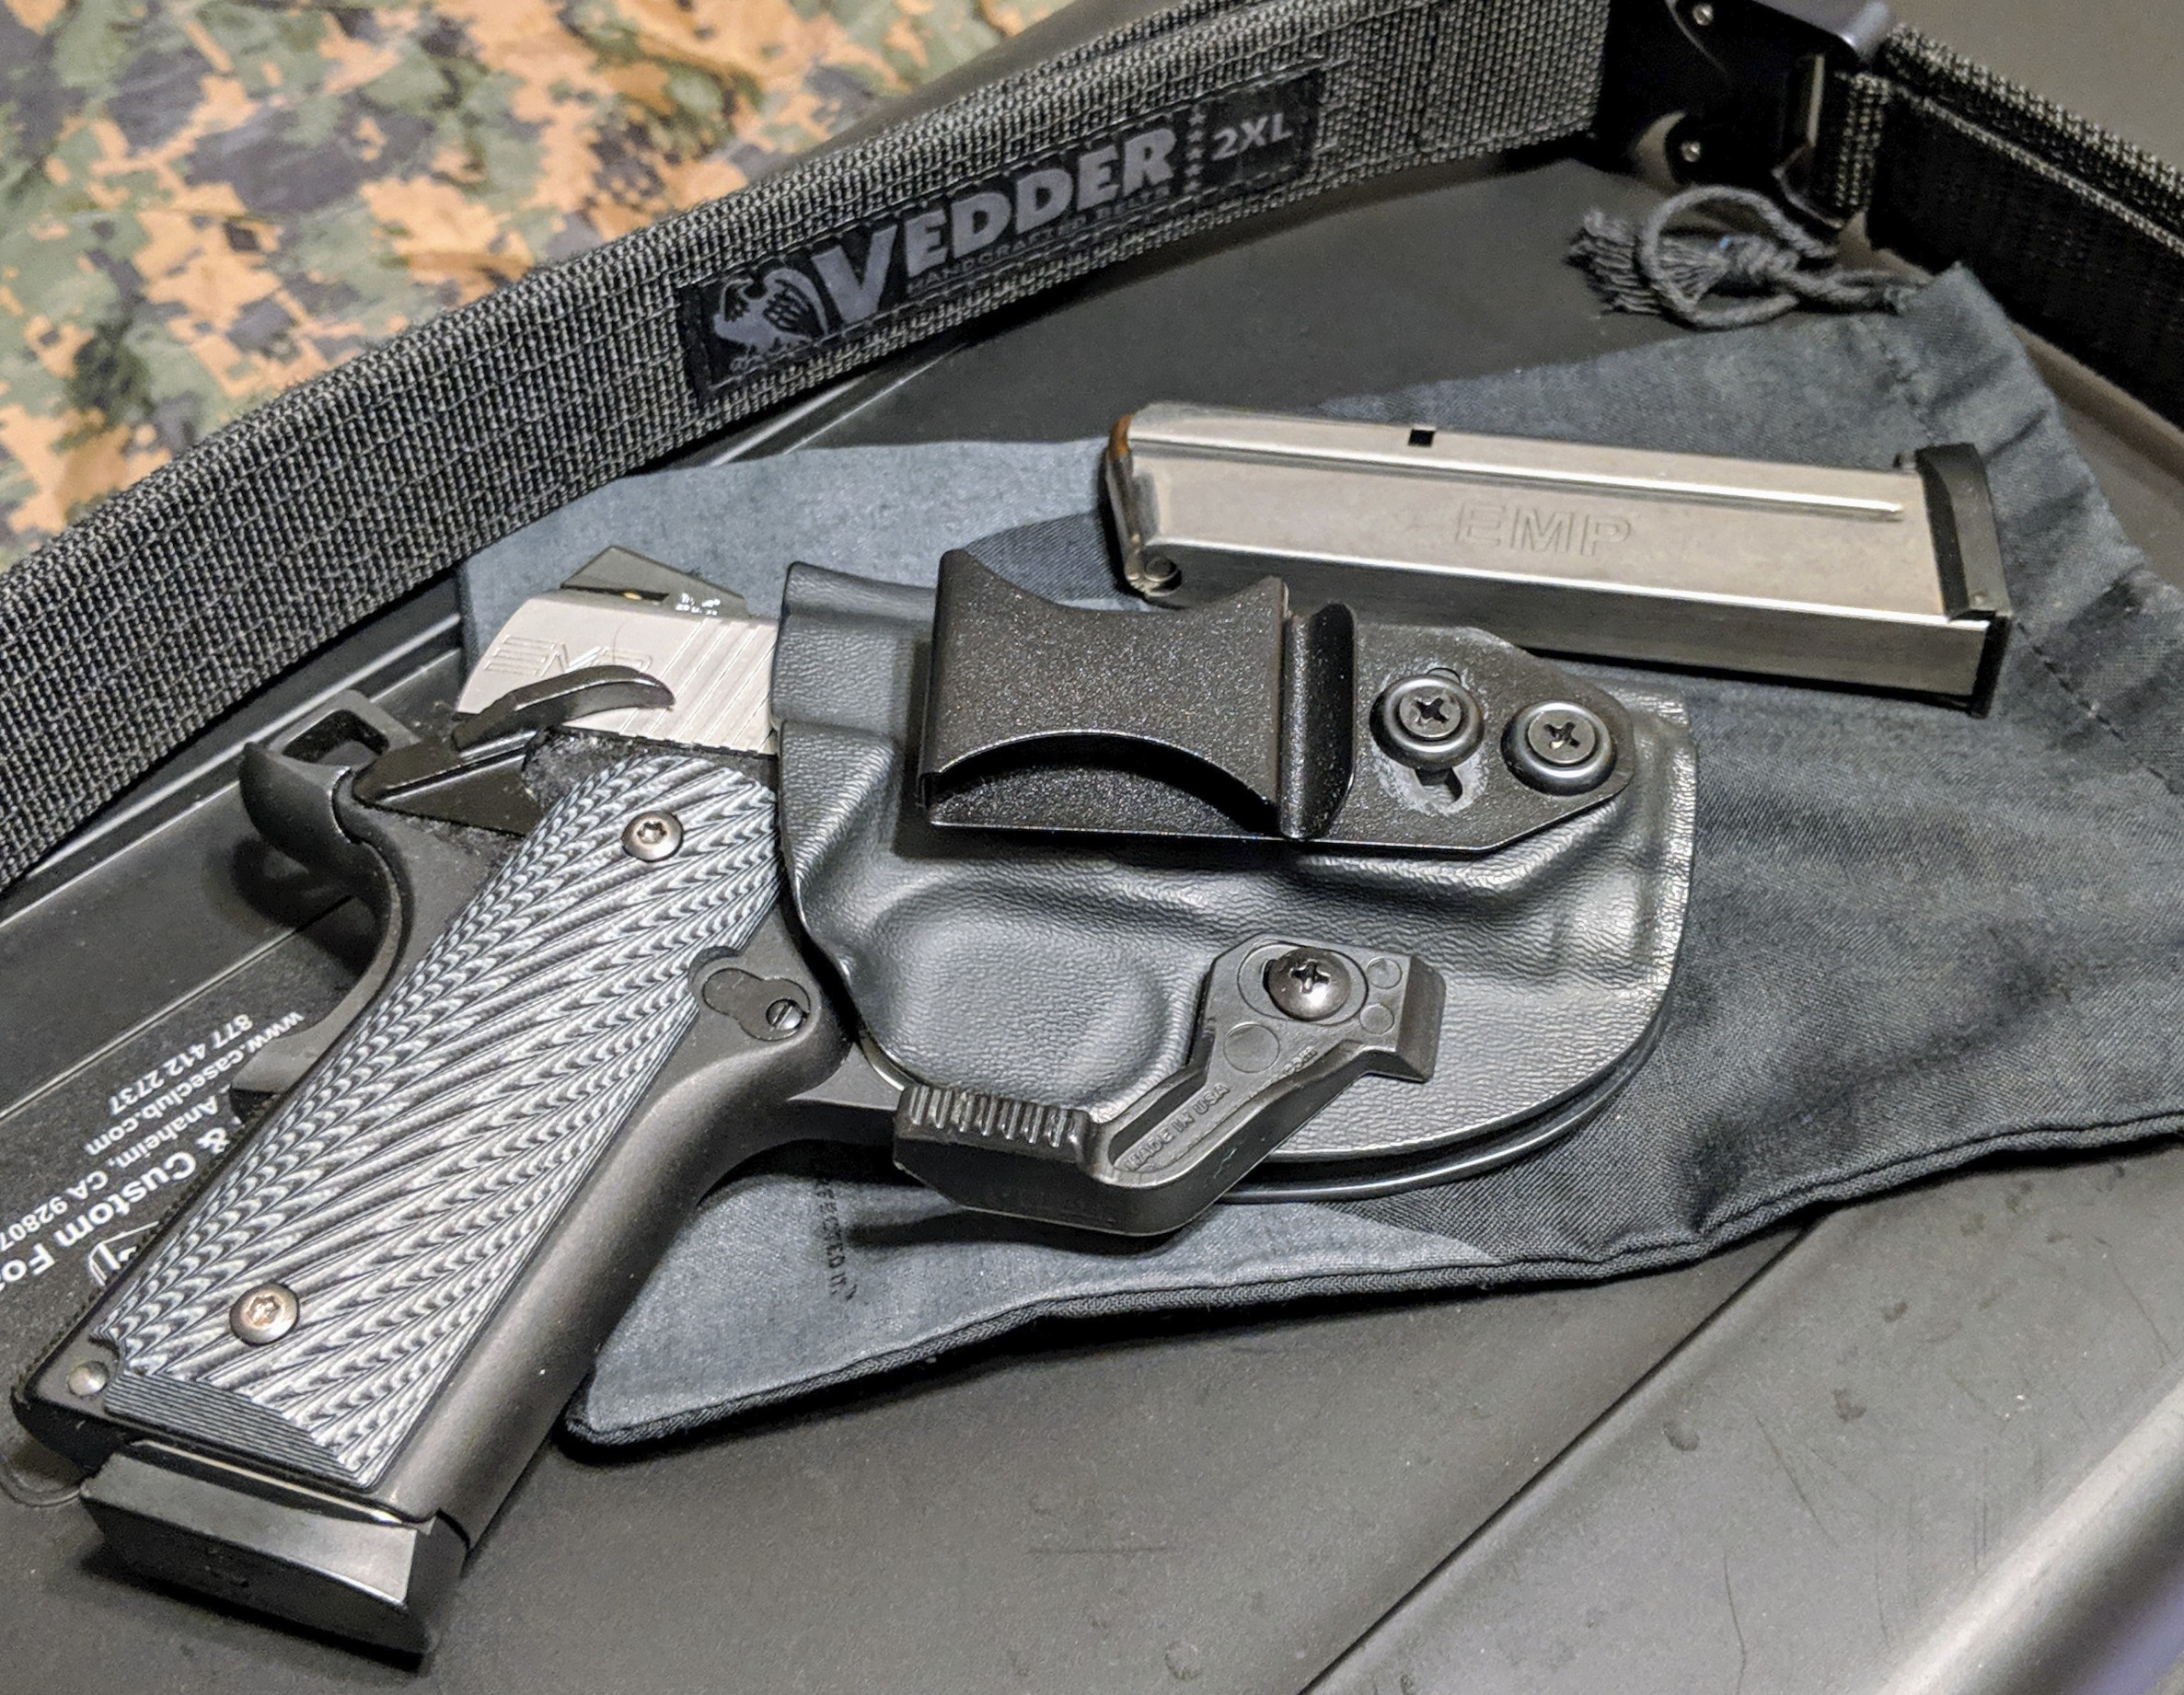 DIGTHERIG – Chris and his Springfield Armory EMP 9mm in a